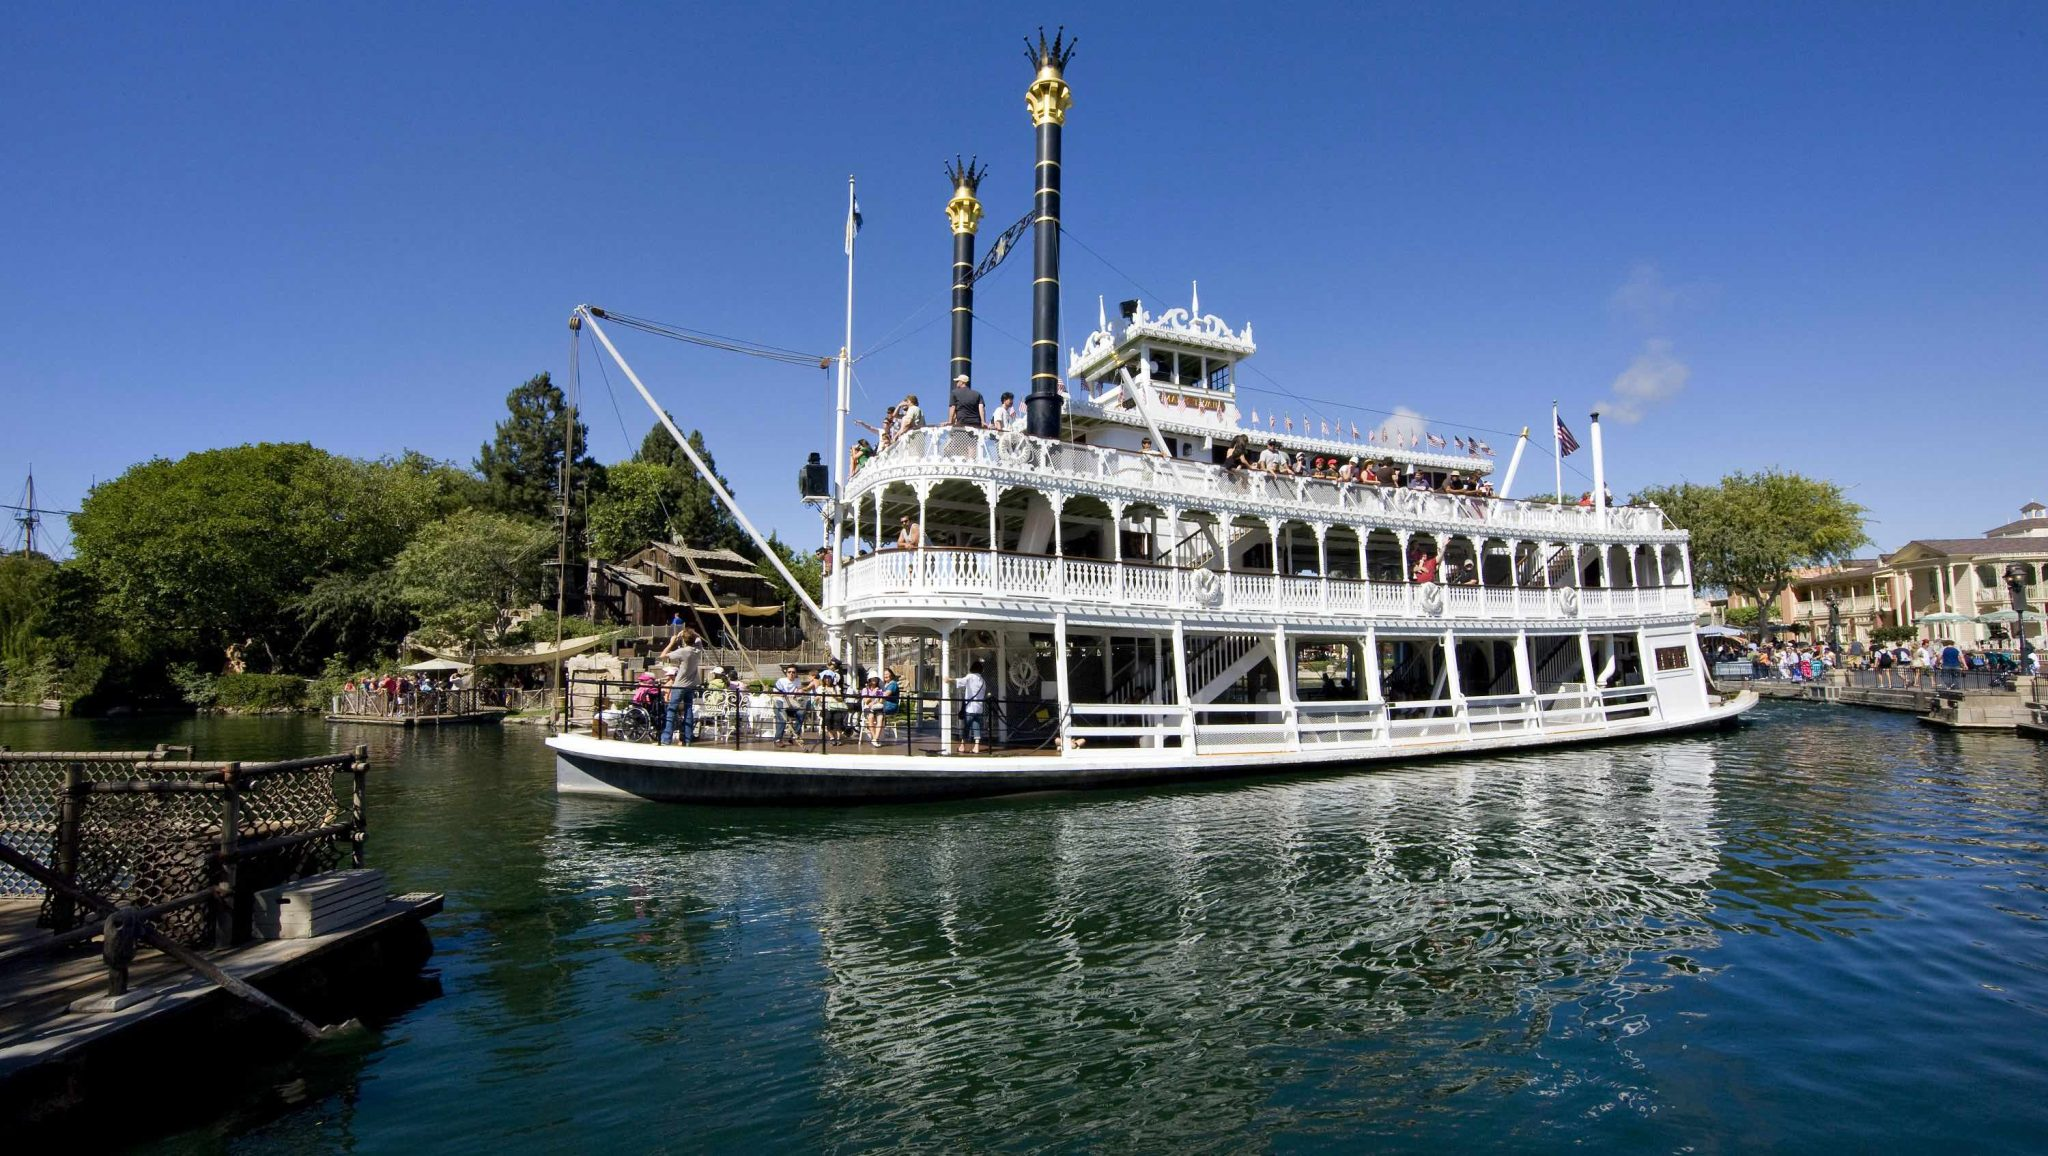 How To Bring Disney into Your Homeschool Routine, tips featured by top US Disney blogger, Marcie and the Mouse: MARK TWAIN RIVERBOAT -- While visiting Frontierland, Disneyland park guests can cruise back in time on a 14-minute sightseeing voyage aboard a recreation of the glorious 19th-century steam-powered paddlewheel riverboats that carried people and cargo up and down the mighty Mississippi. (Paul Hiffmeyer/Disneyland)